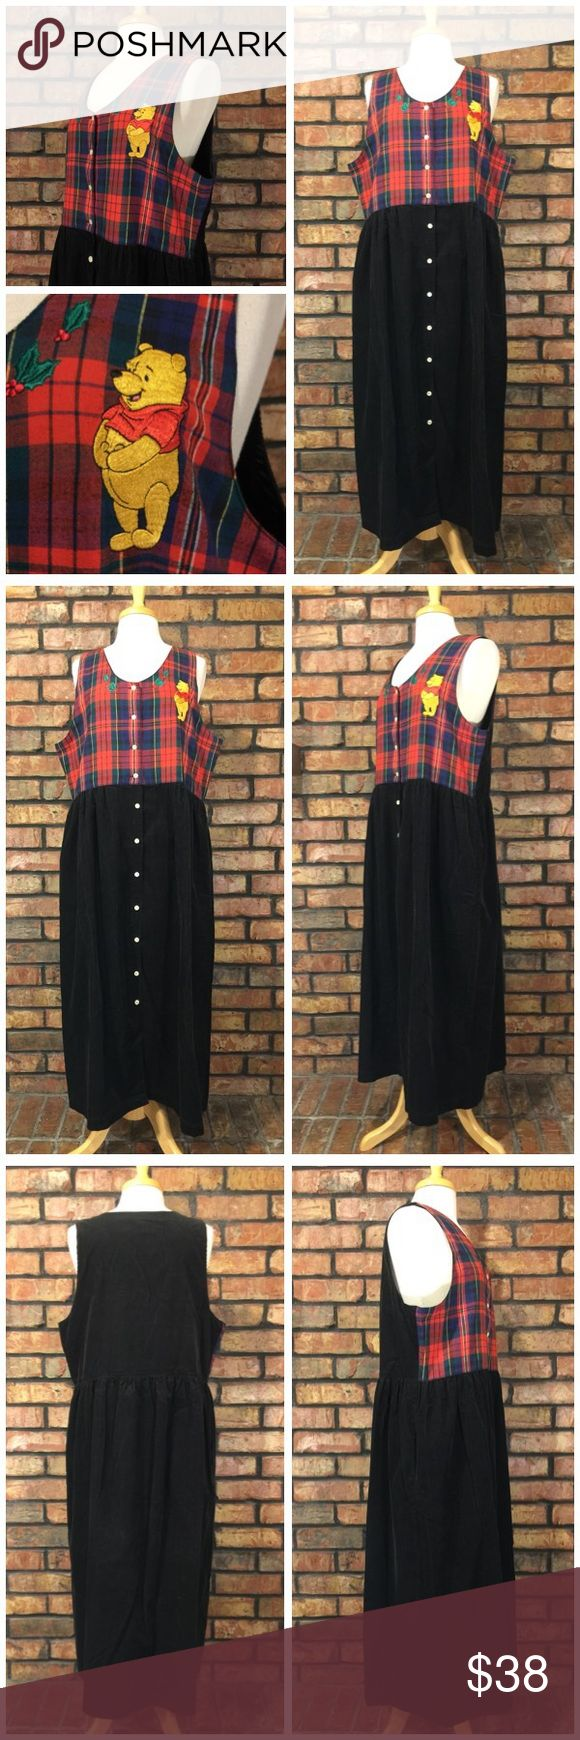 """Winnie The Pooh Plaid Corduroy Long Jumper Dress Please Read Full Description and View All Pictures  Size: XL (see measurements below)  Buttons up front, pockets  Gently used. No rips, stains, or tears. Smoke free home.  Measurements are taken with garment laying flat:  Bust: 22""""  Waist: 20""""  Length: 50"""" Disney Dresses"""